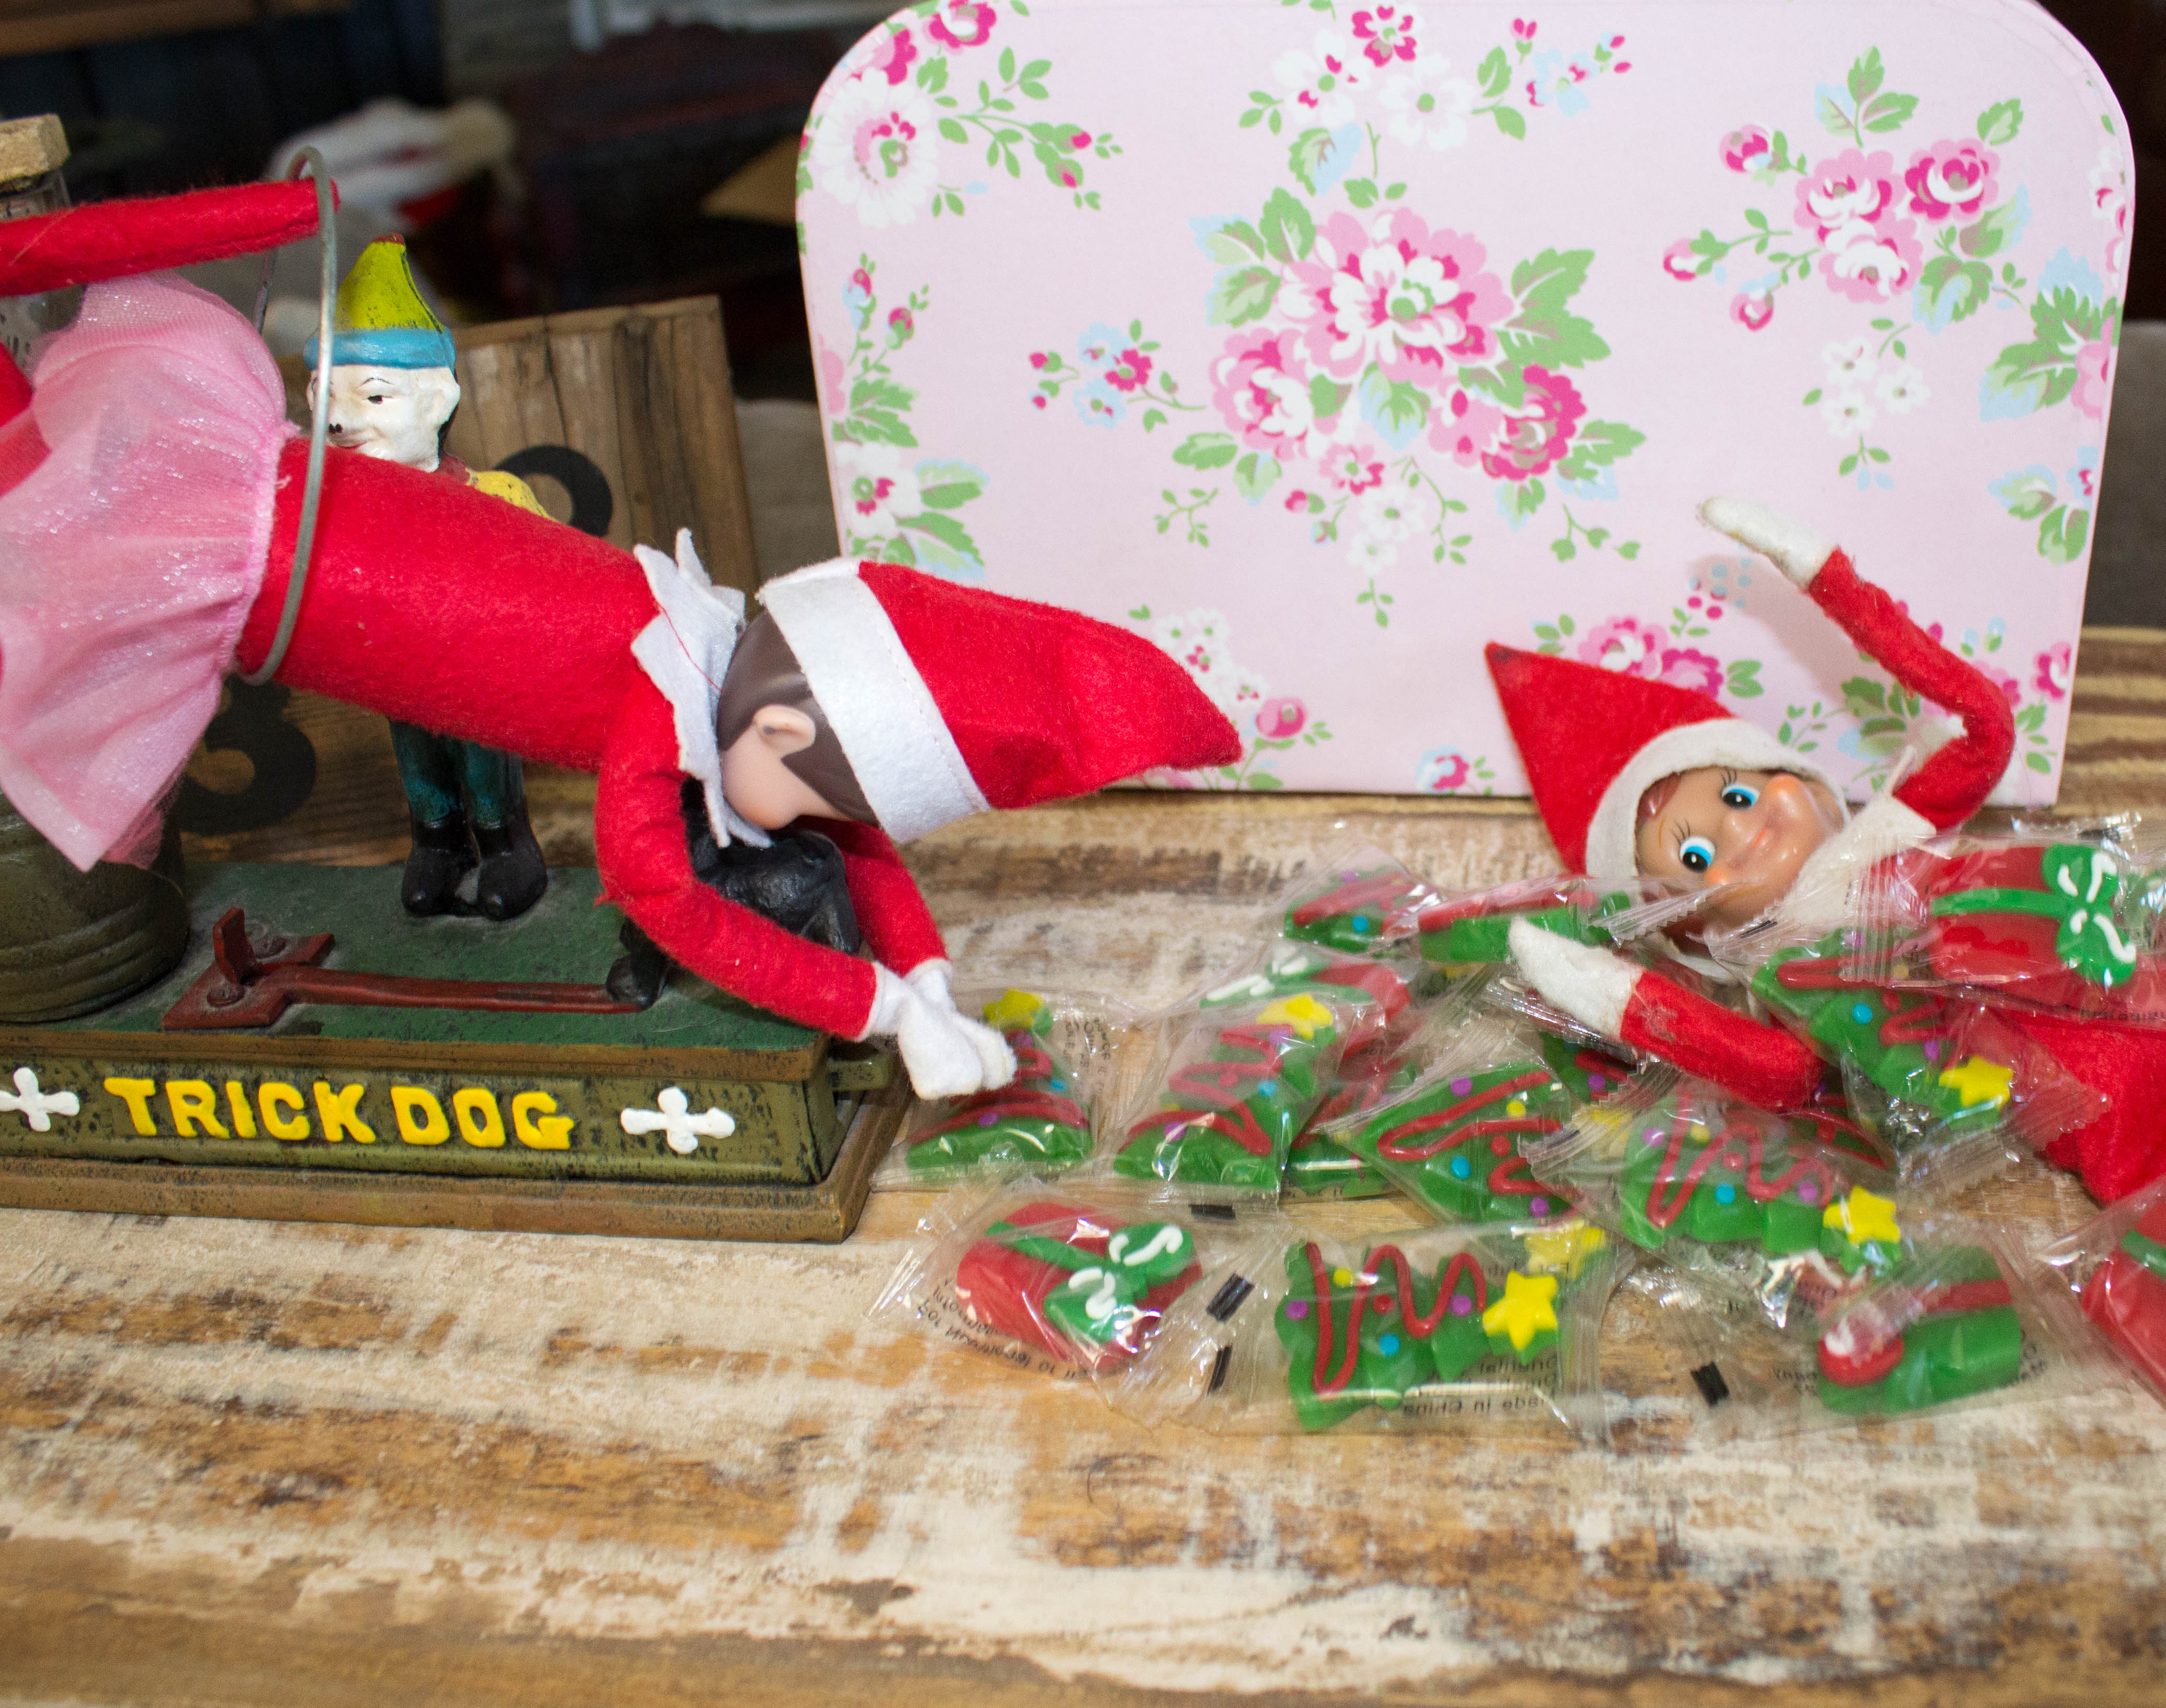 elf-on-the-shelf-ideas-and-elf-on-shelf-products-scenes-christmas-traditions-12